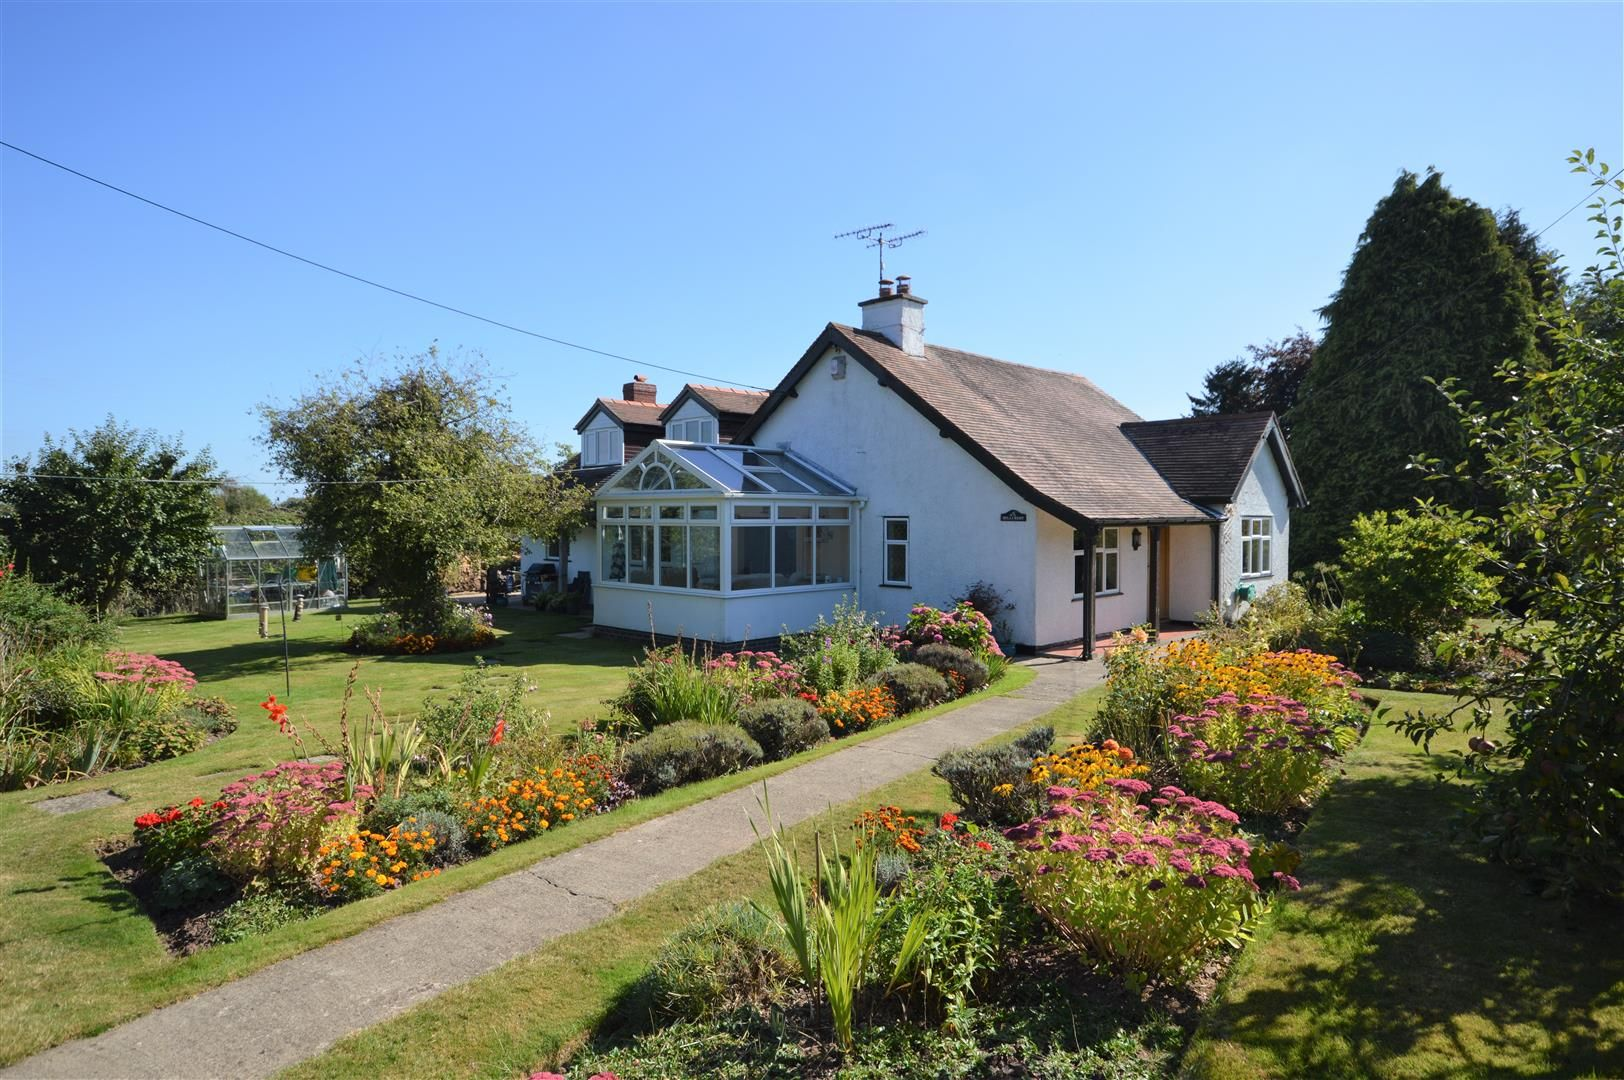 4 bed detached bungalow for sale in Dilwyn, HR4